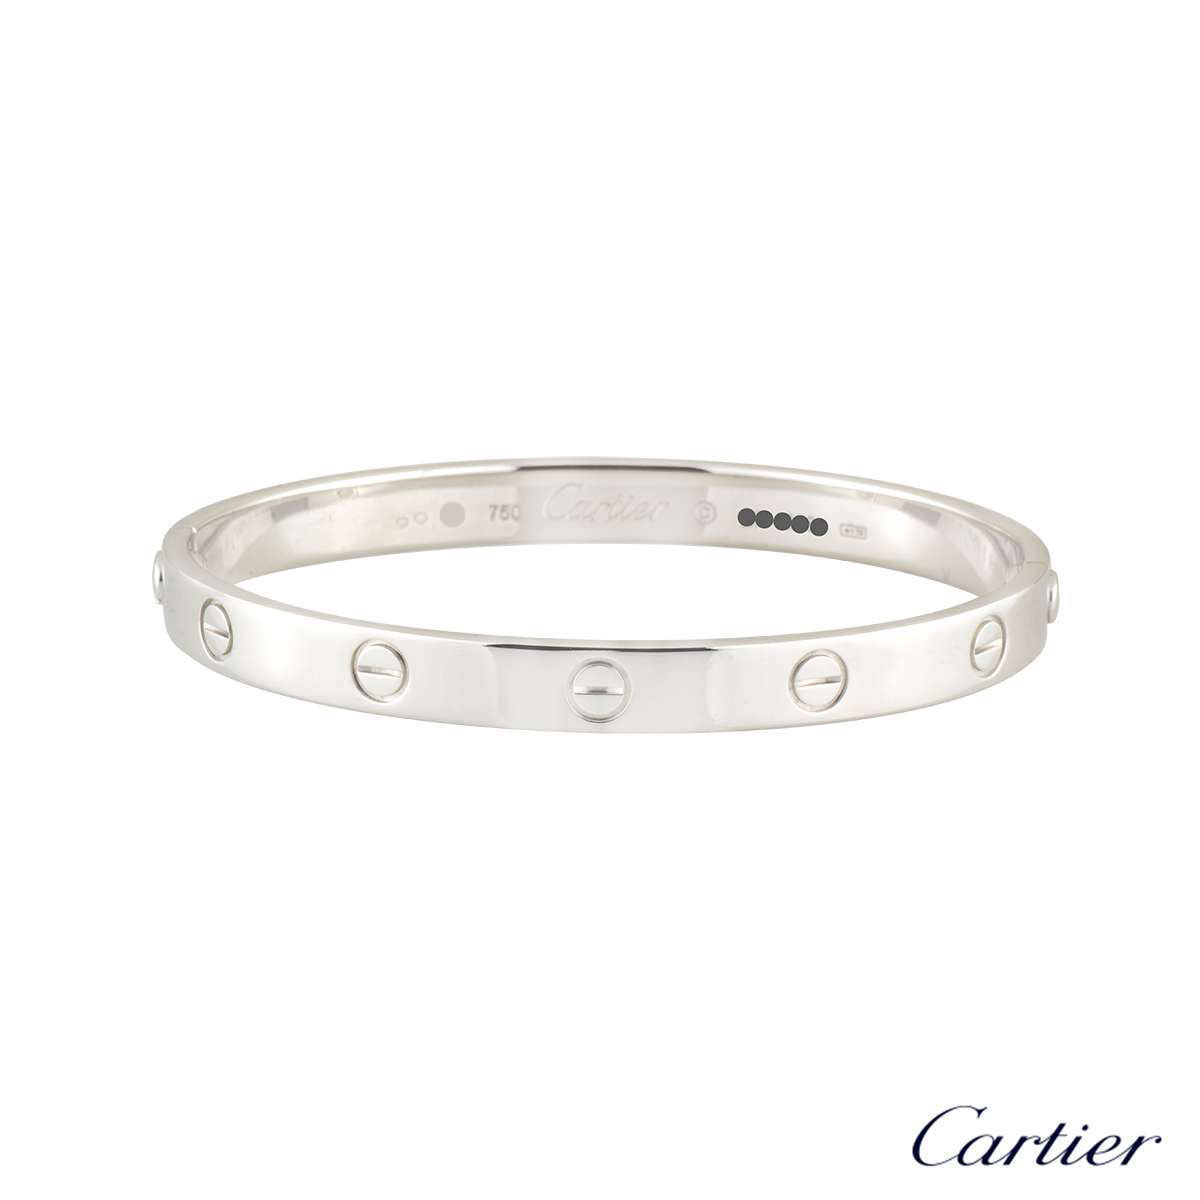 Cartier White Gold Plain Love Bracelet Size 19 B6035419